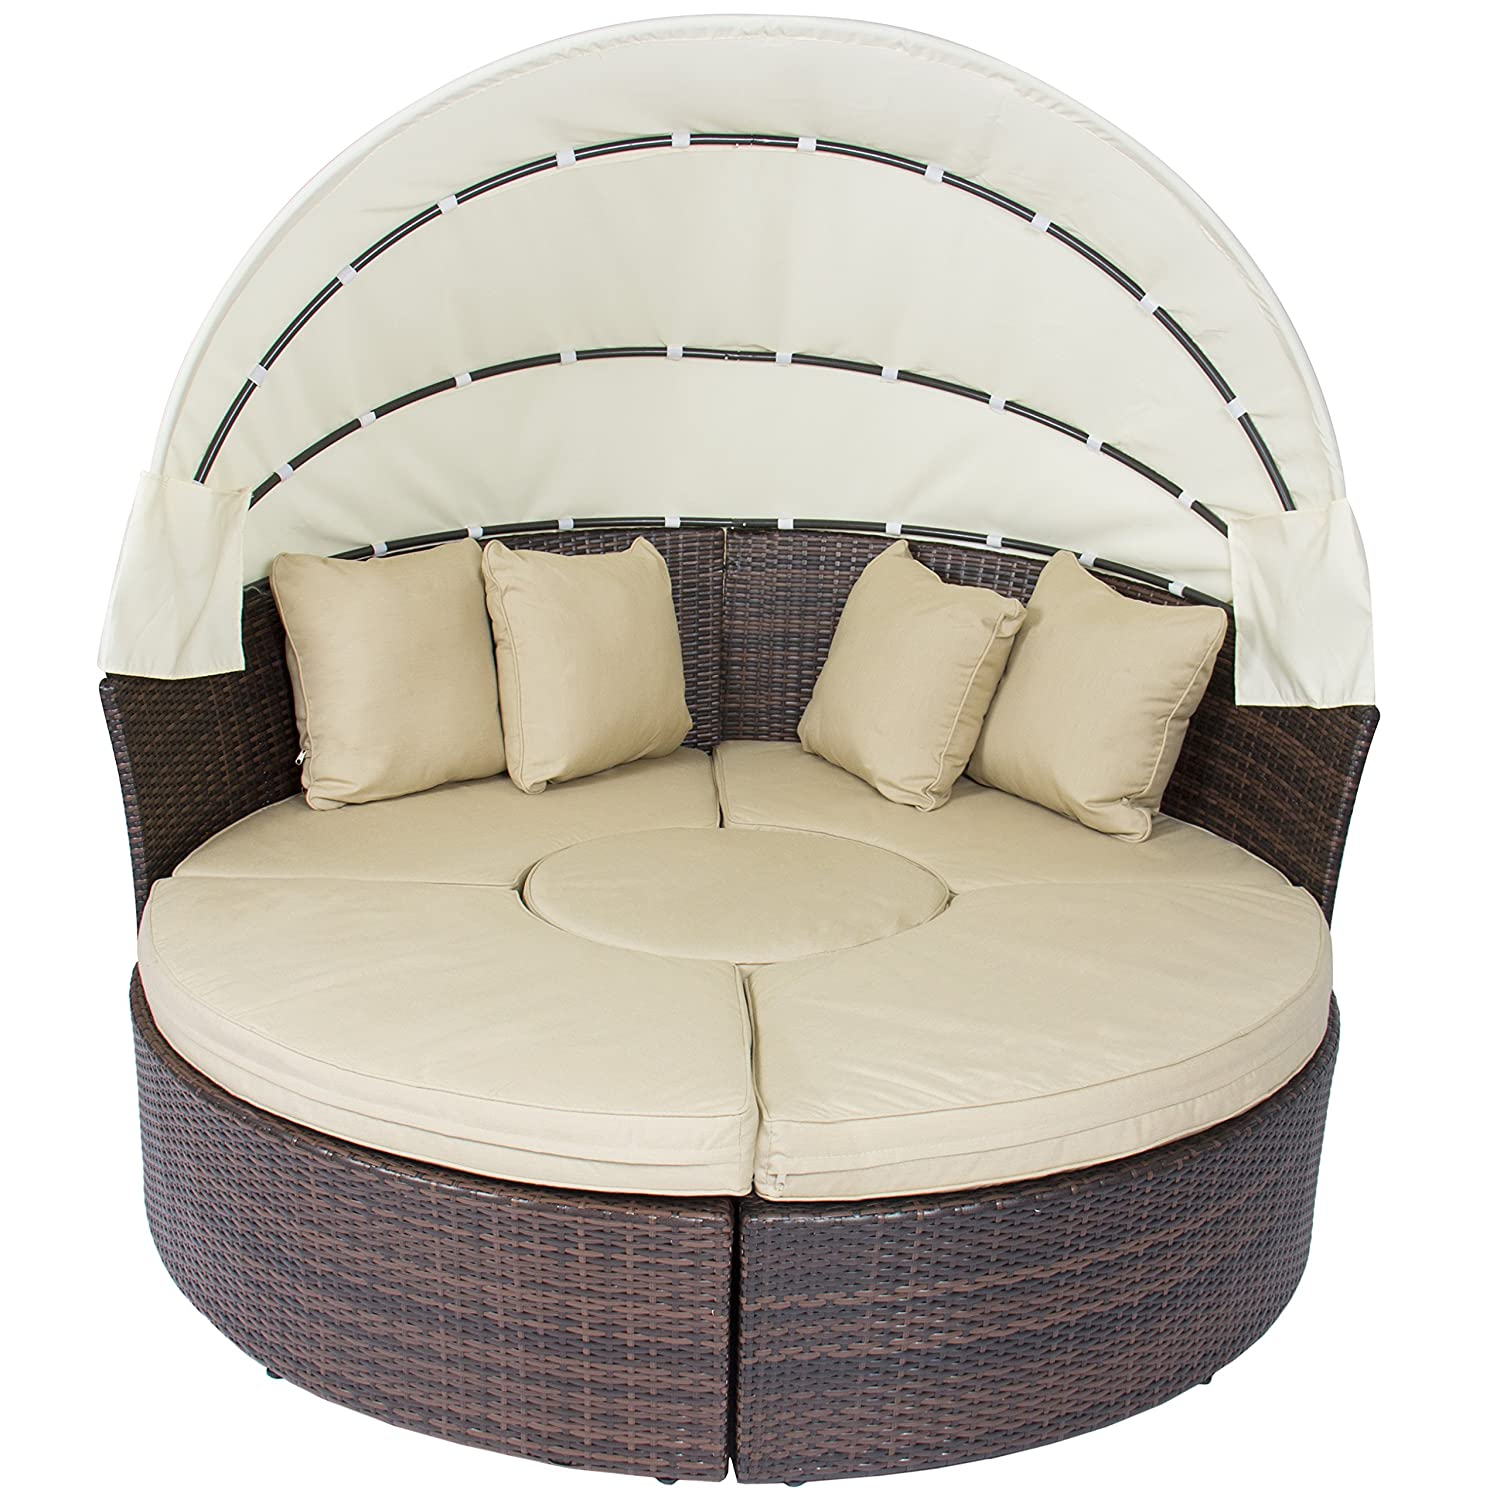 Amazon.com  Outdoor Patio Sofa Furniture Round Retractable Canopy Daybed Brown Wicker Rattan  Garden u0026 Outdoor  sc 1 st  Amazon.com : canopy day bed - memphite.com